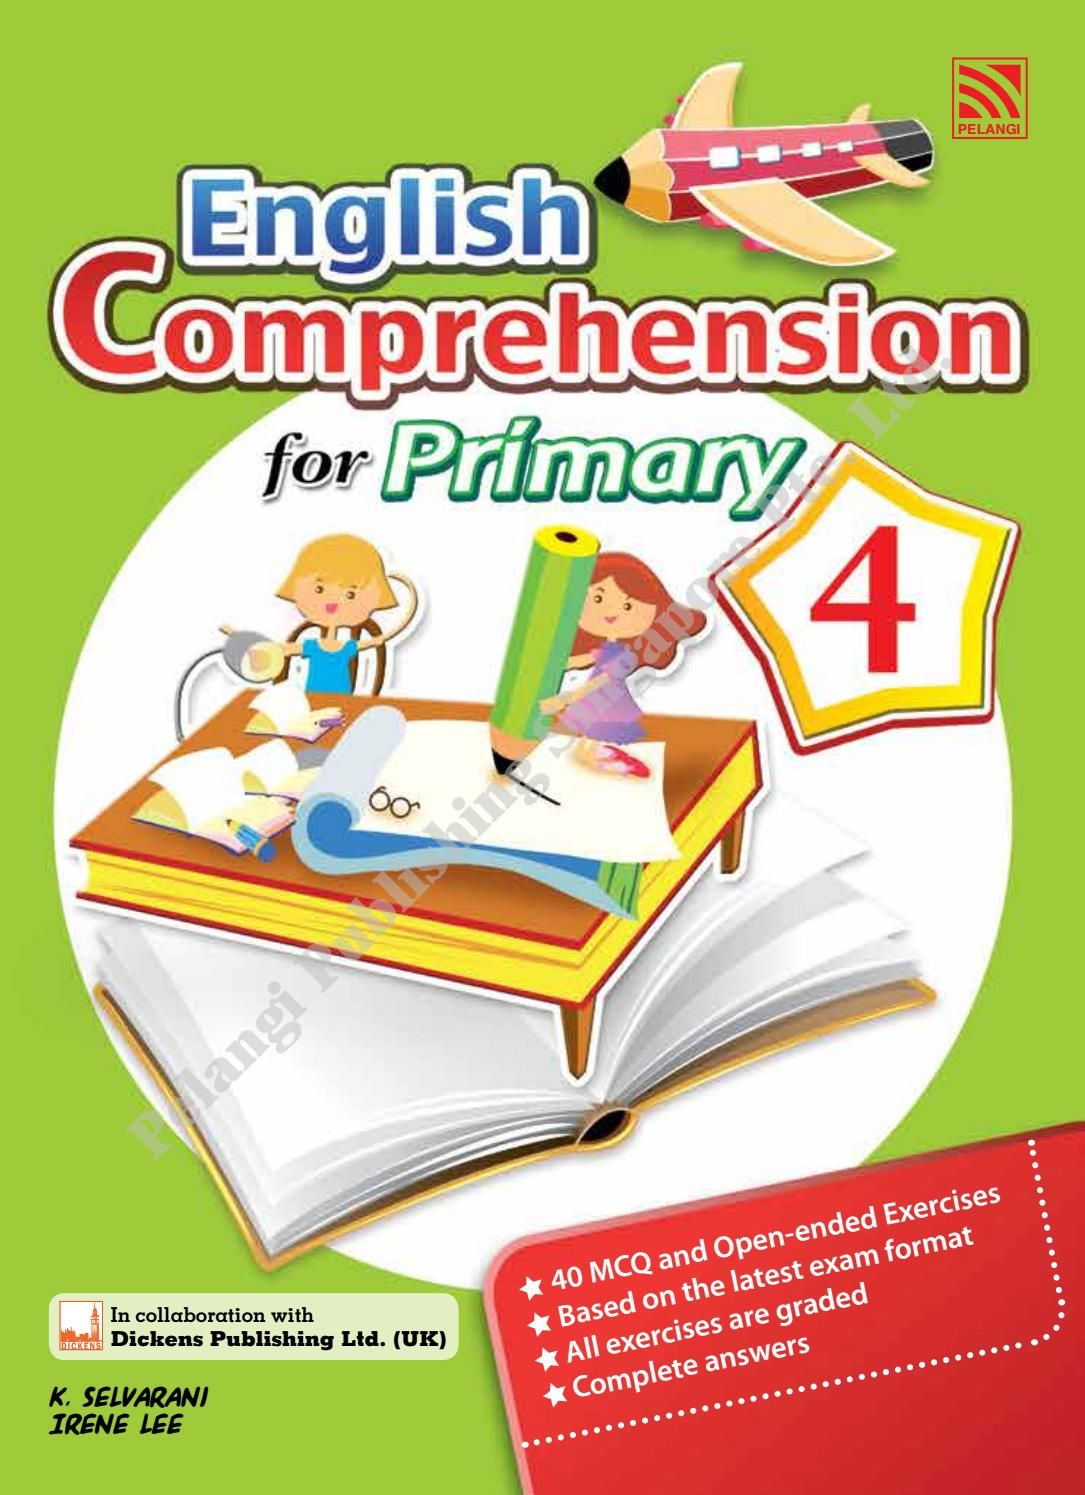 English Comprehension For Primary 4 English Grammar Book Pdf English Conversation Learning English Grammar Book How to read books to learn english